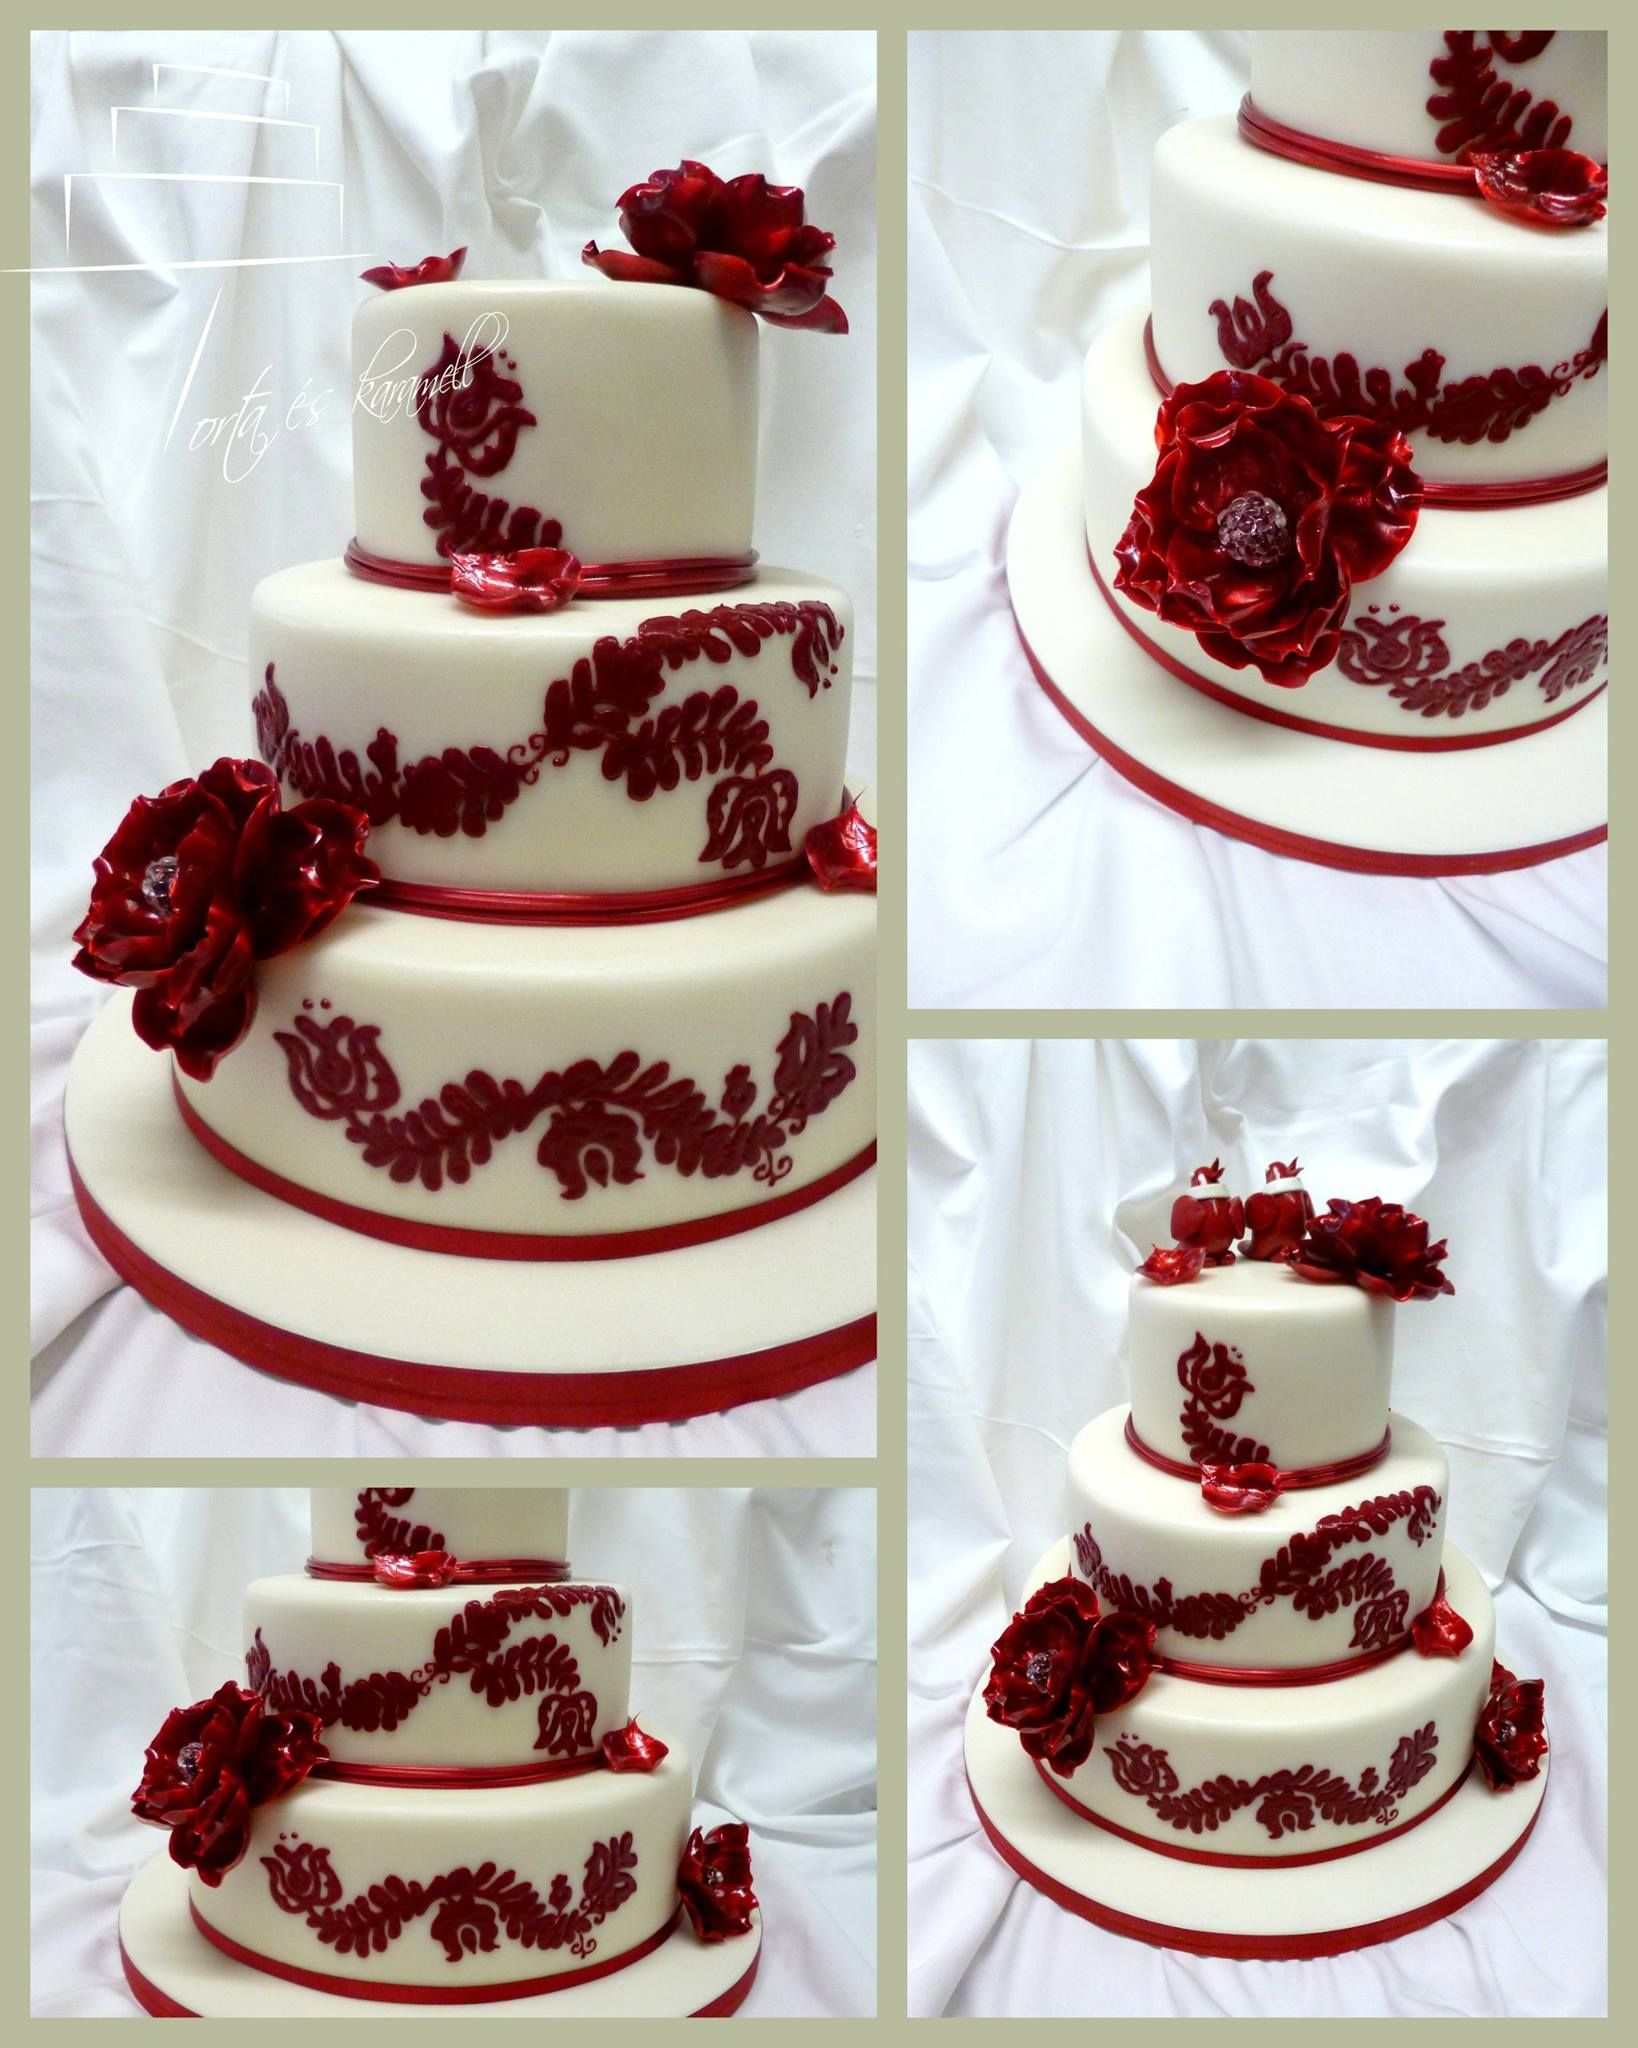 Maroon and cream wedding decor  Pin by Mariela Quiroga on Red Wedding Ideas  Pinterest  Cake